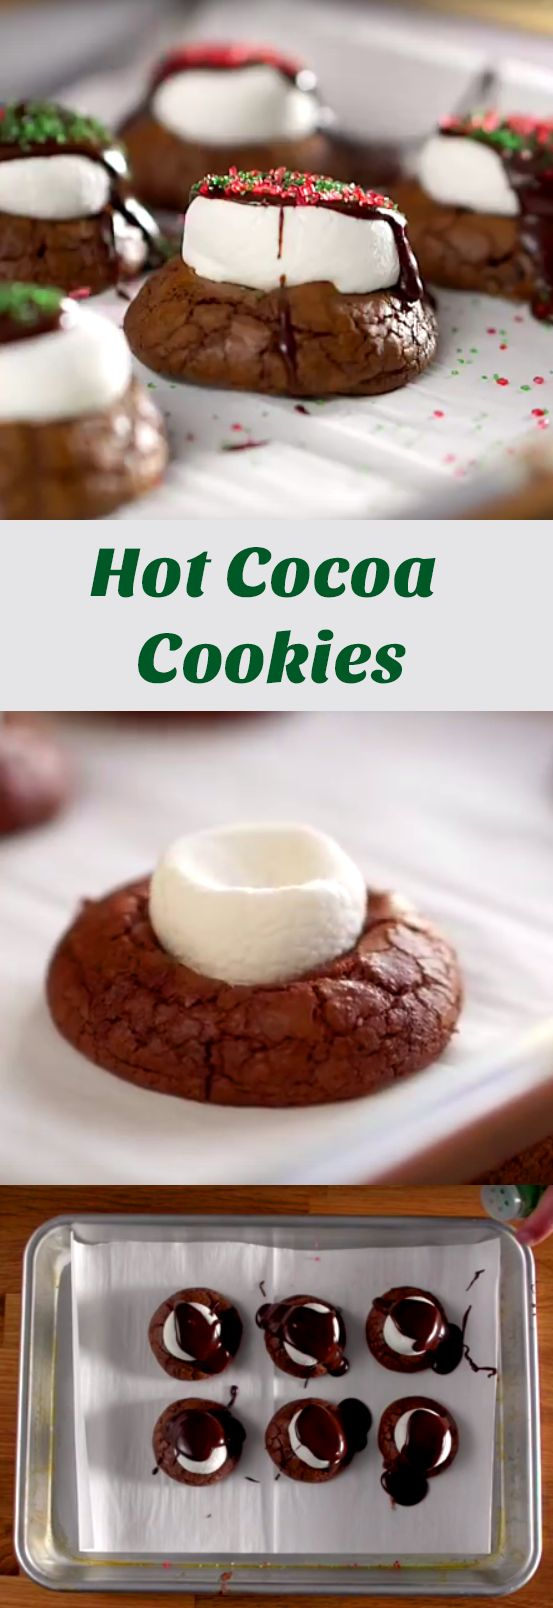 Best 25+ Cocoa cookies ideas on Pinterest | Chewy chocolate ...